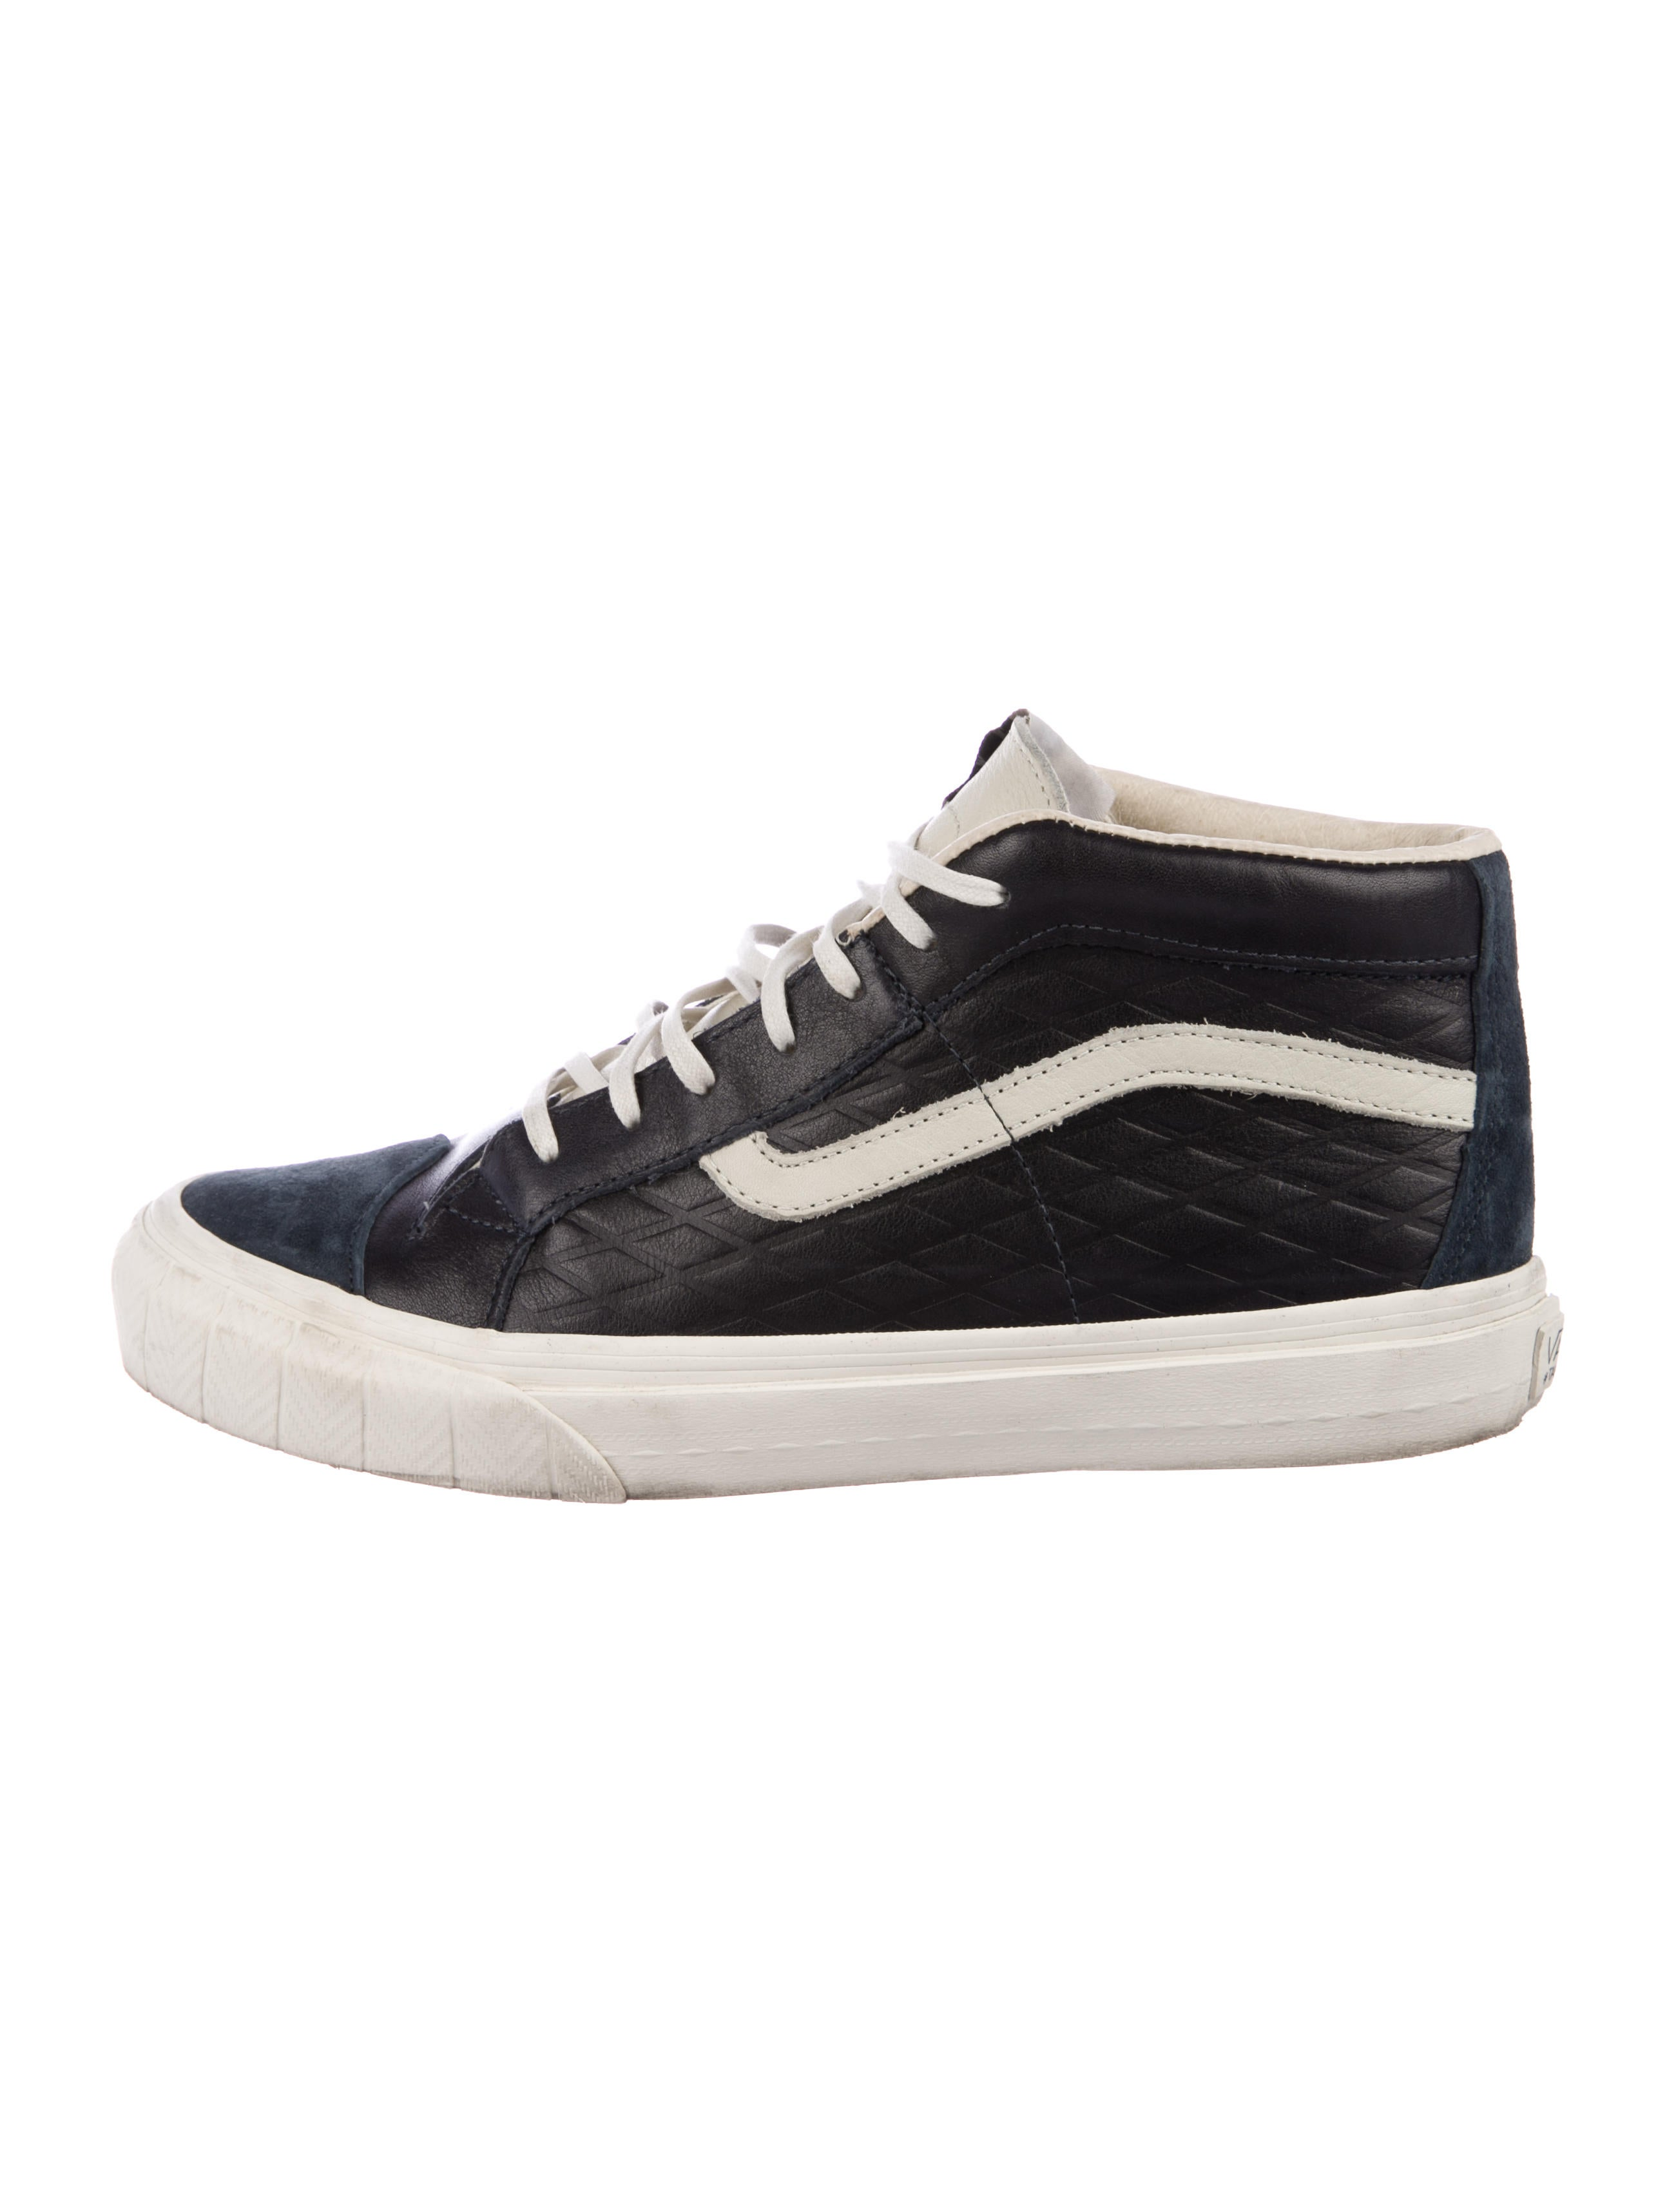 Mens Sk8-Mid LX Leather Sneakers Vans Discount Enjoy Store With Big Discount Buy Cheap Sast Free Shipping Lowest Price 6zlrxjOjz